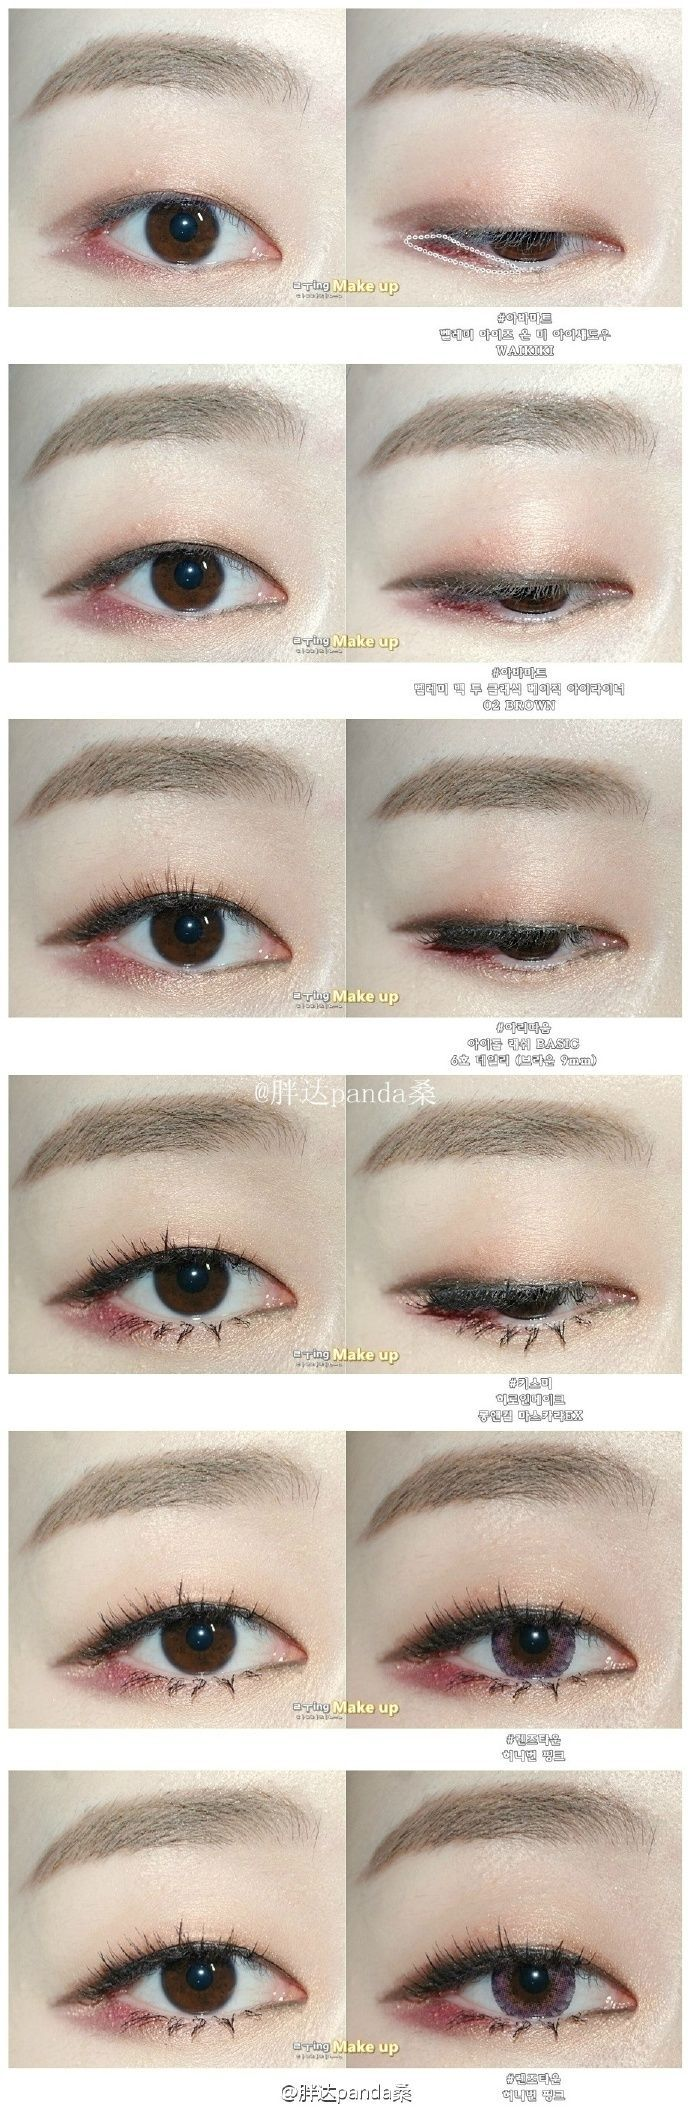 Asian makeup monolid 2 korean makeup tutorials pinterest asian makeup monolid 2 baditri Choice Image